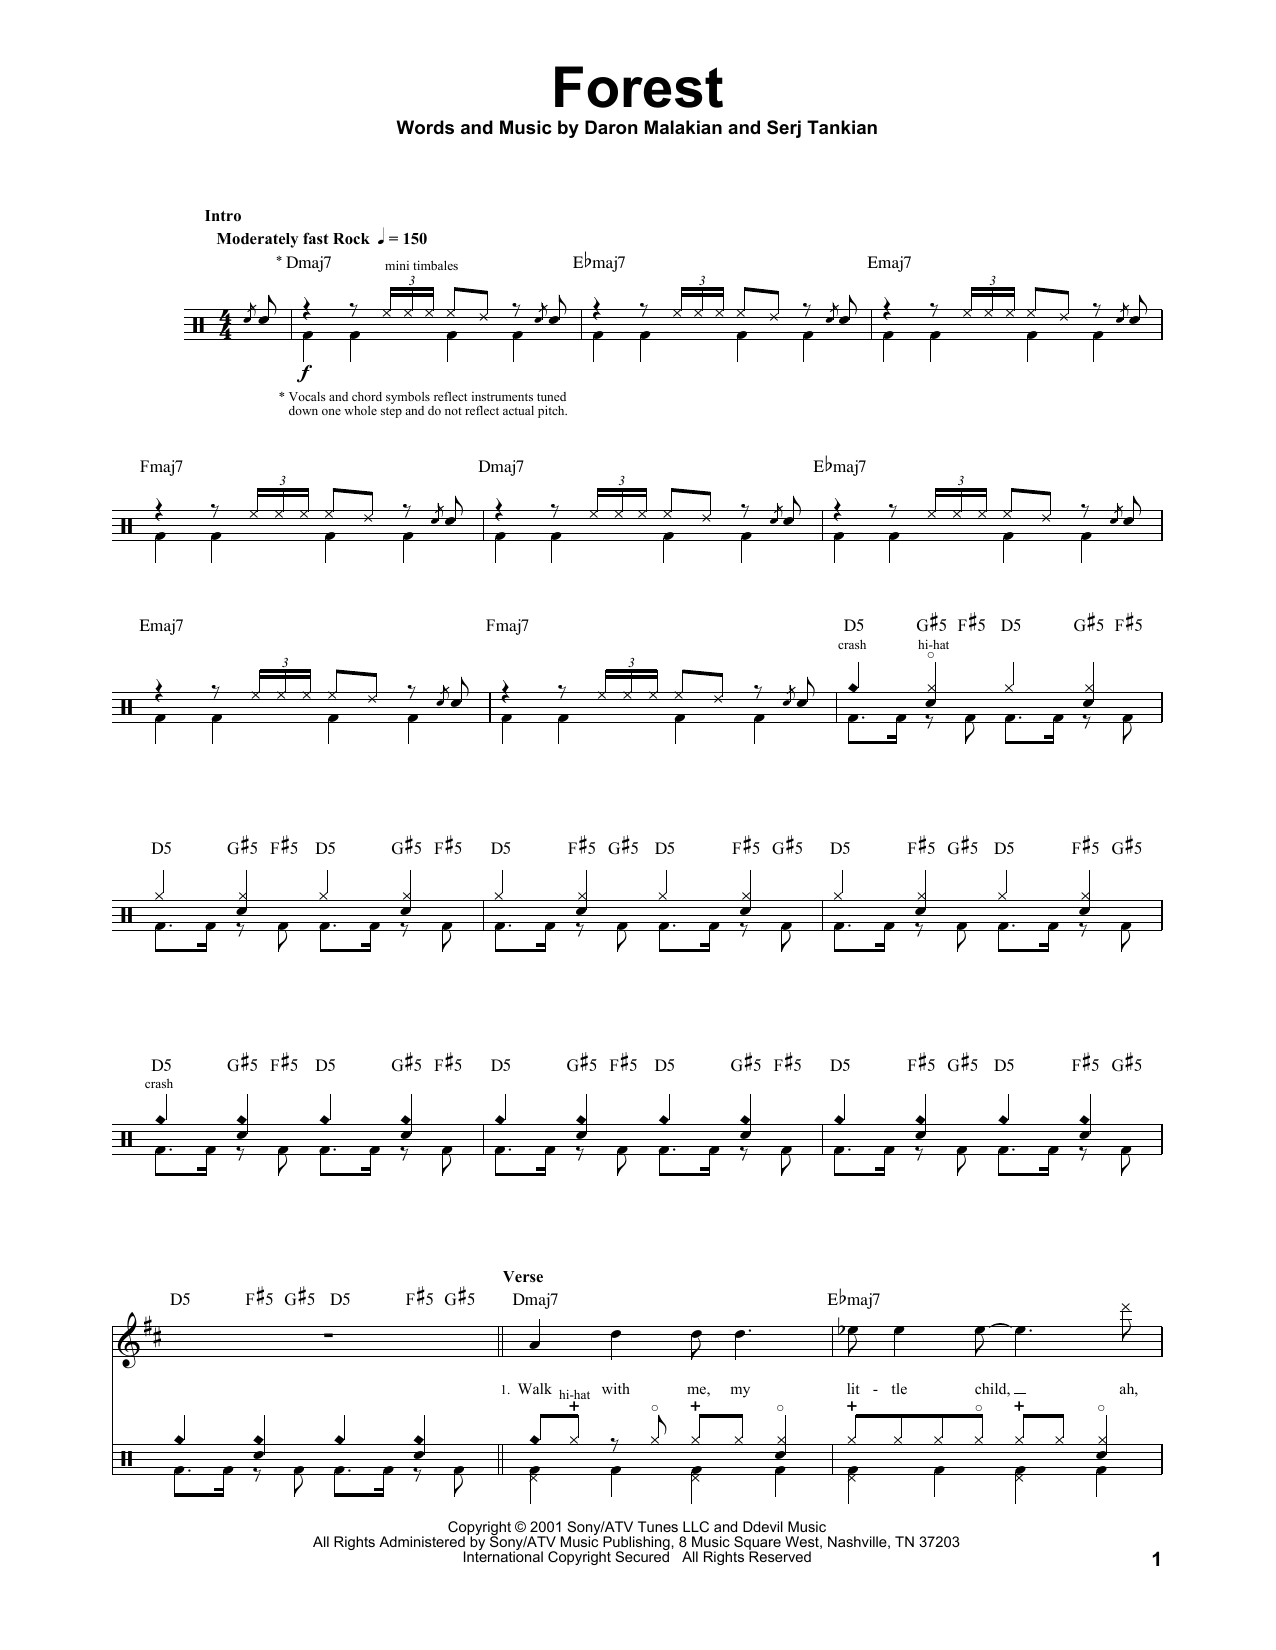 Forest sheet music by system of a down drums transcription 174378 forest sheet music biocorpaavc Gallery